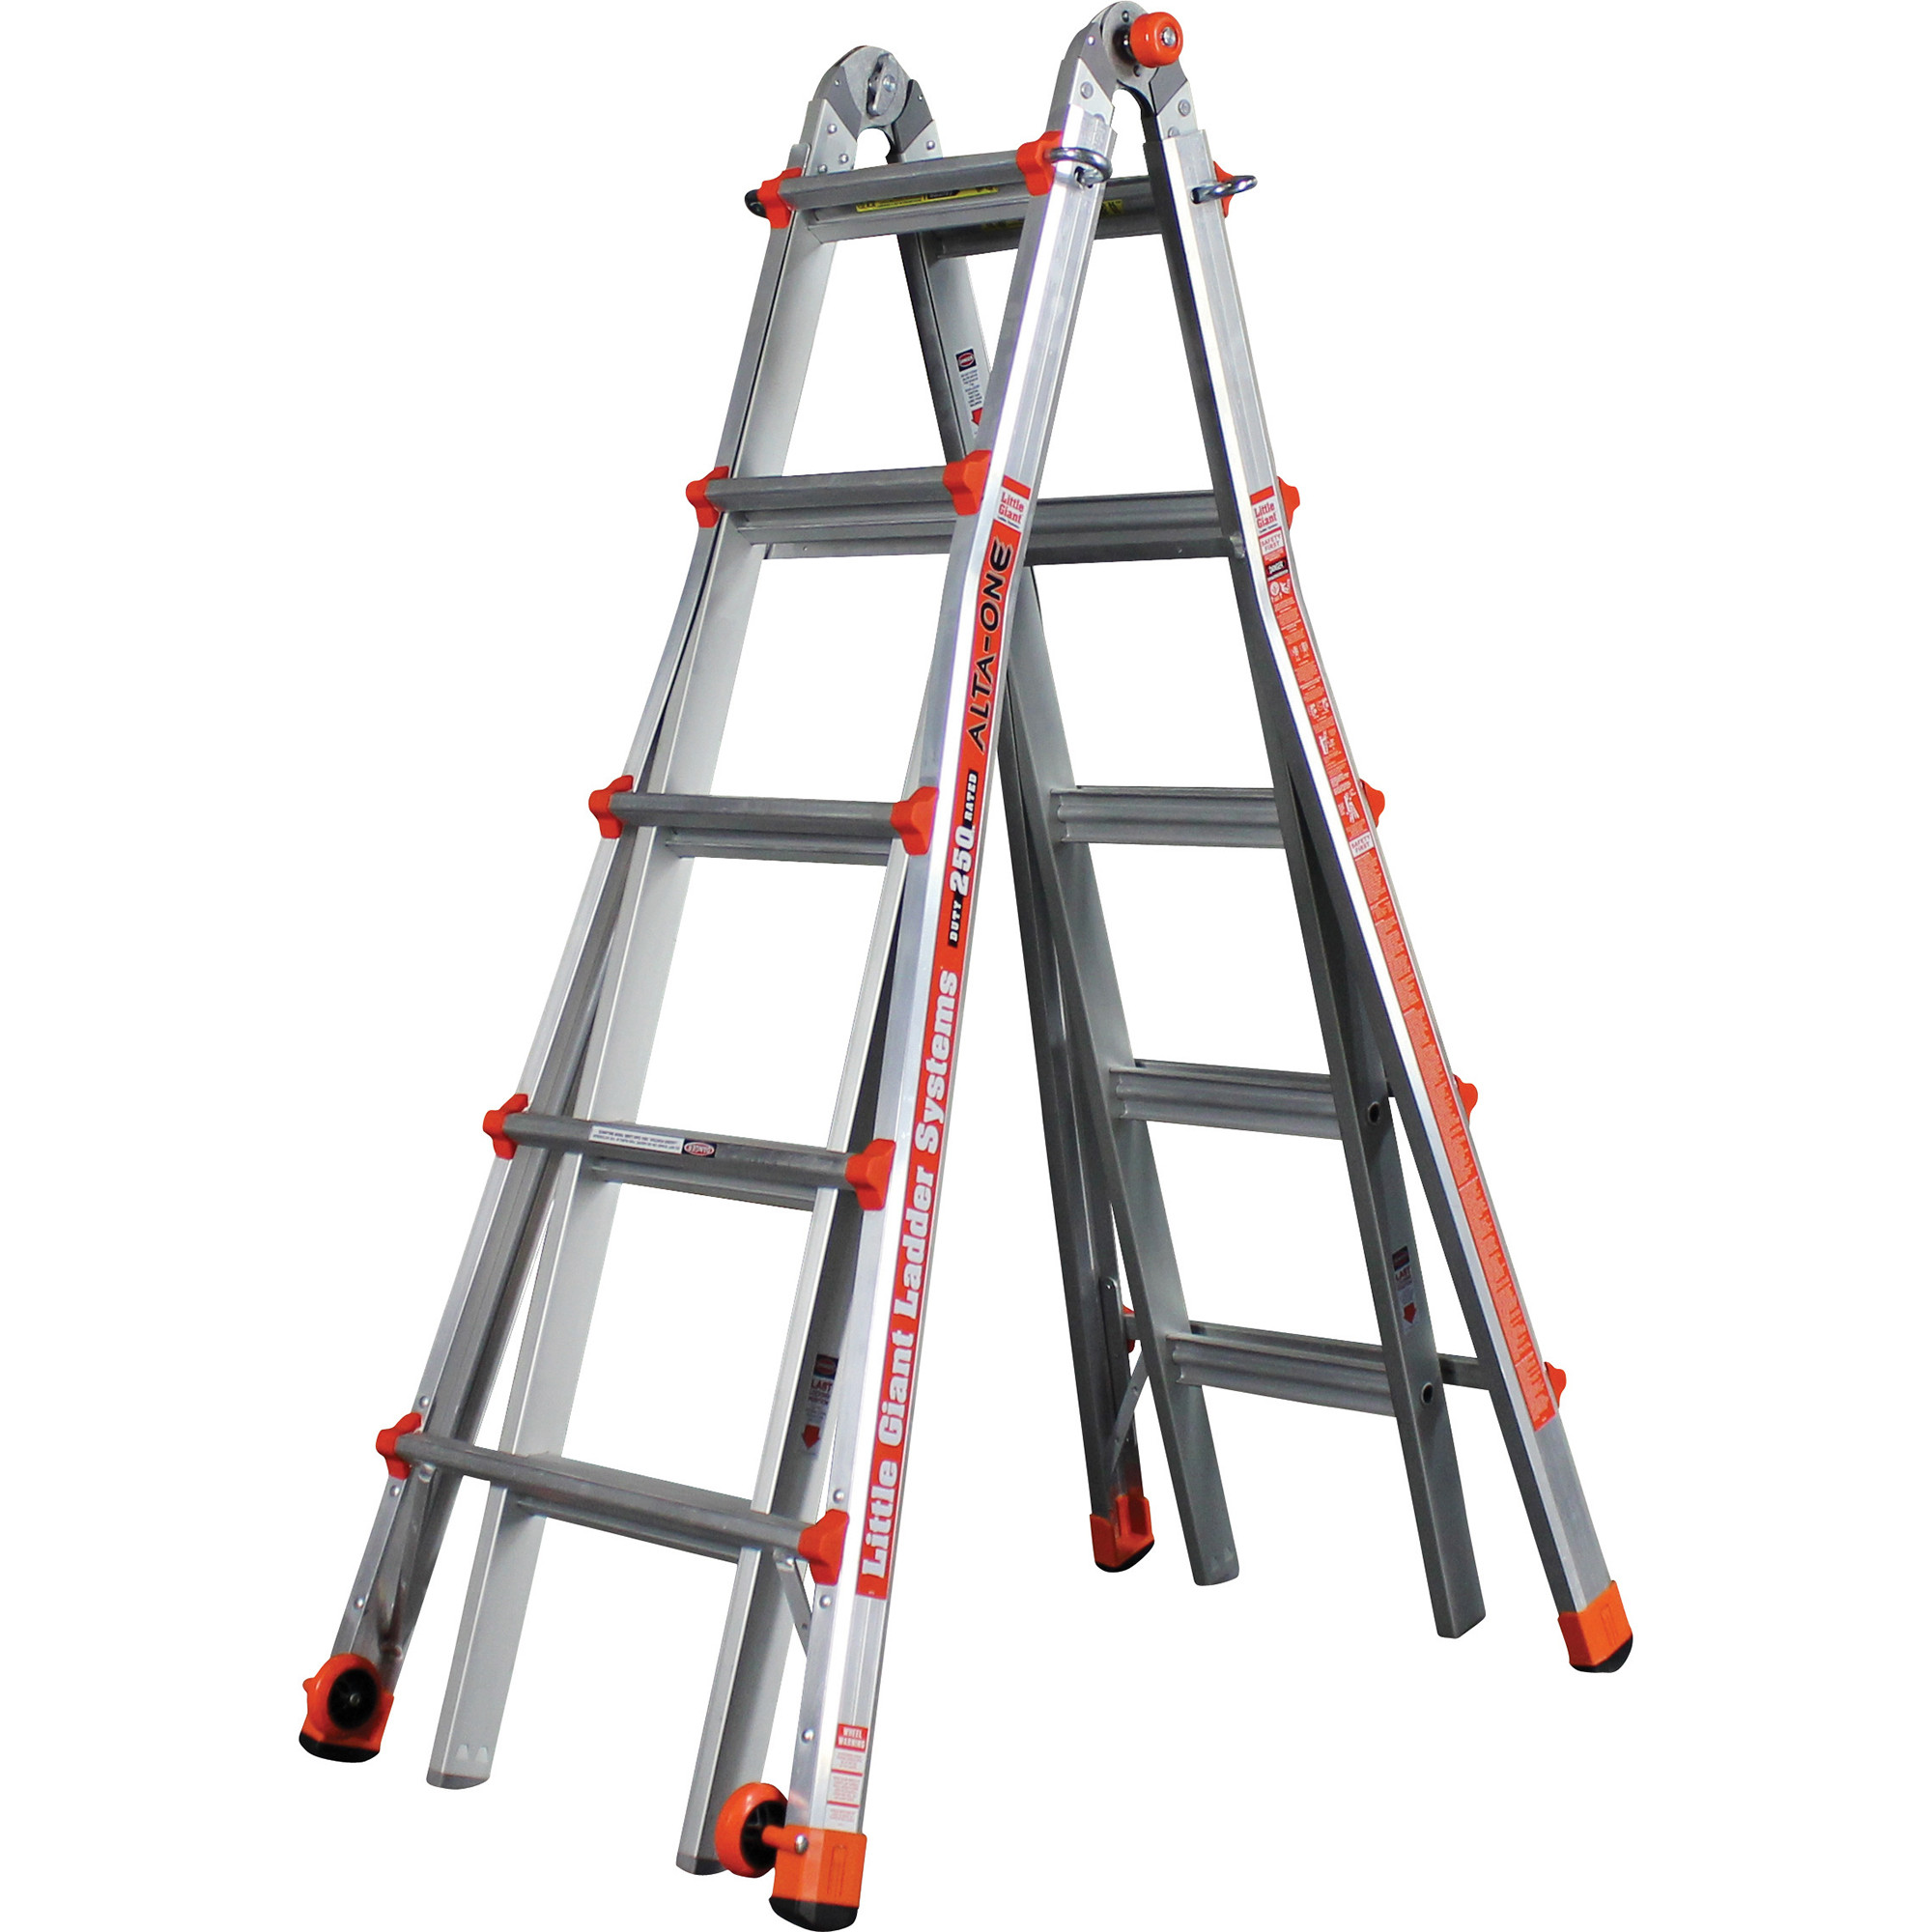 We carry all the Little Giant Ladder Accessories made for Little Giant Ladders here at the Little Giant Ladder Superstore: Wheel Kits, Work Platforms and more.